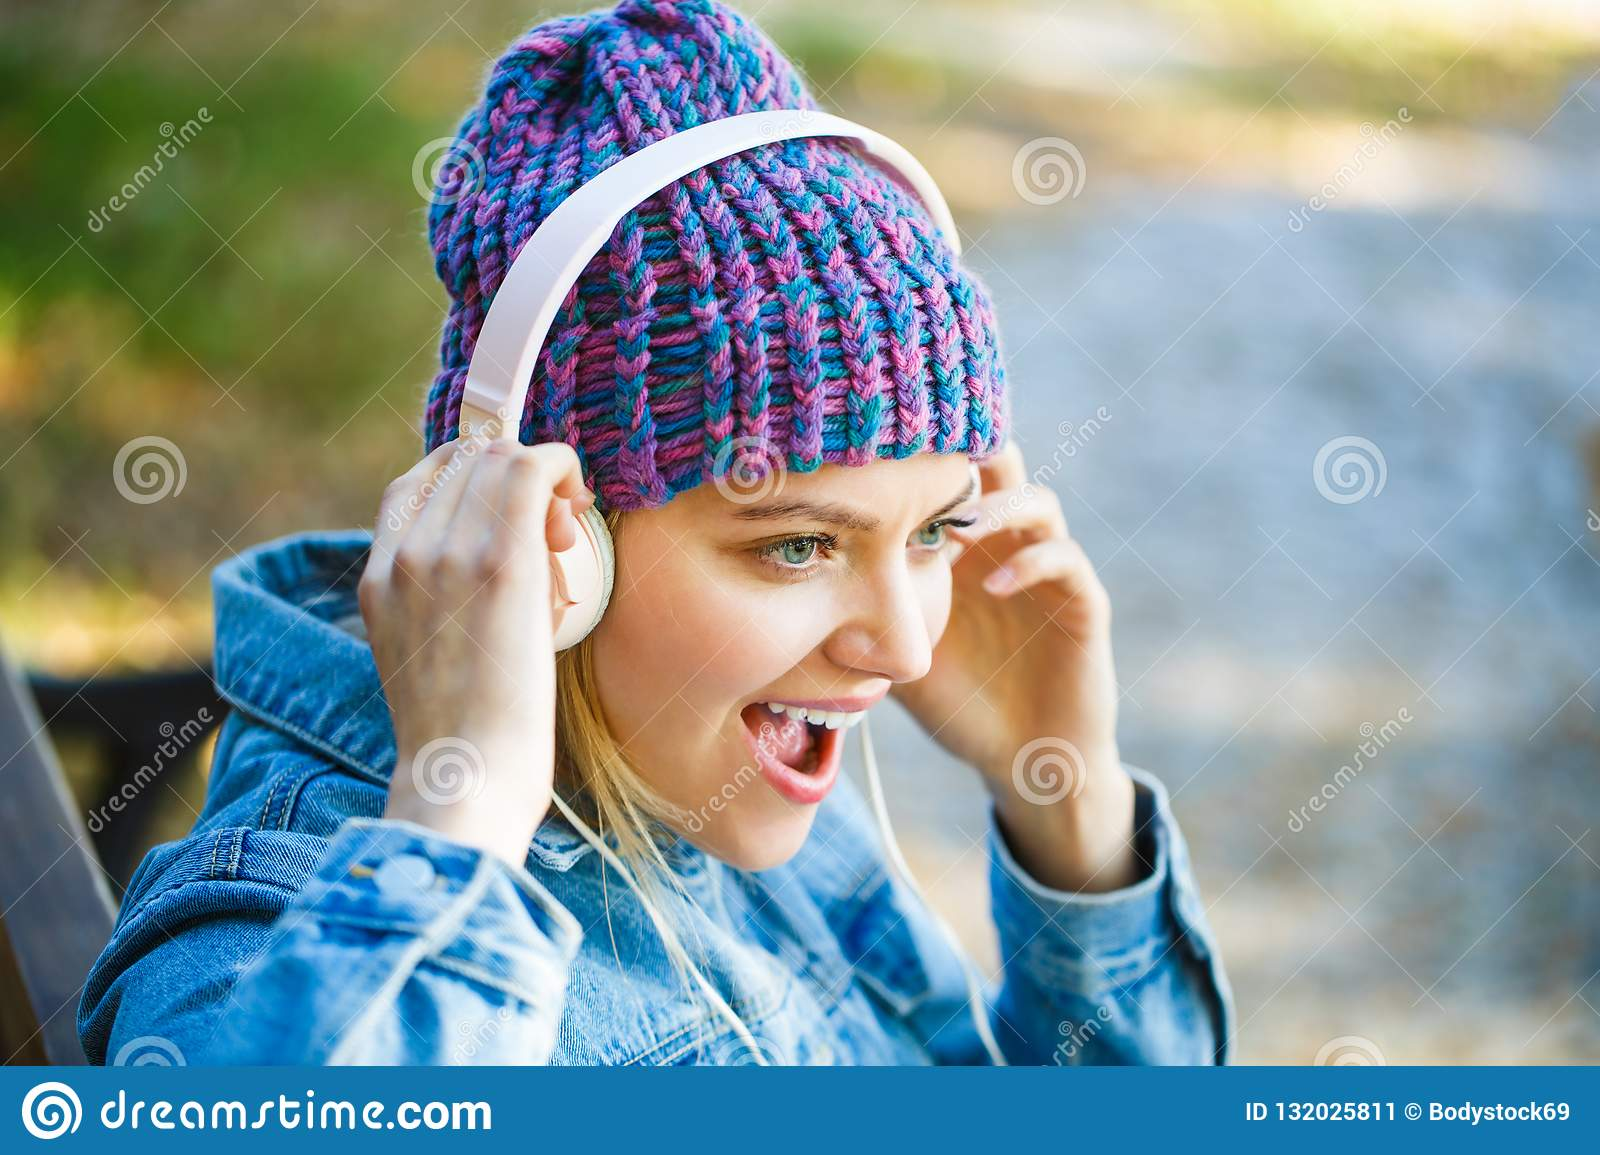 Girl listens to music in headphones. Listening to music.Autumn melody concept. Young woman with big headphones. Cheerful